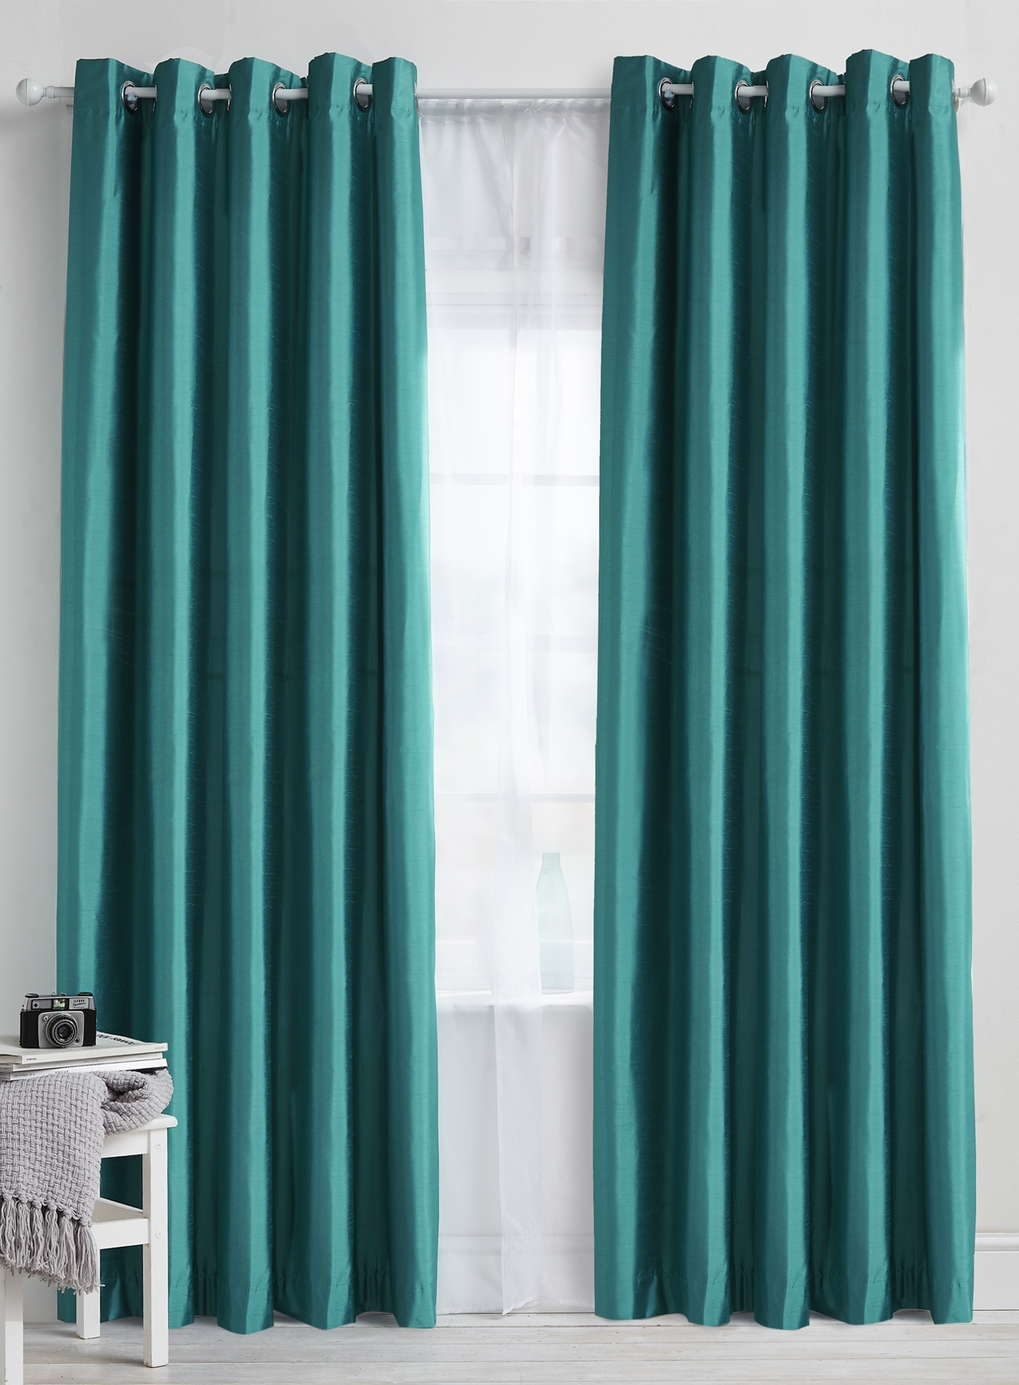 Best Blackout Curtains In Top Inspirations And Thermal Bedroom With Regard To Plain White Blackout Curtains (Image 3 of 15)